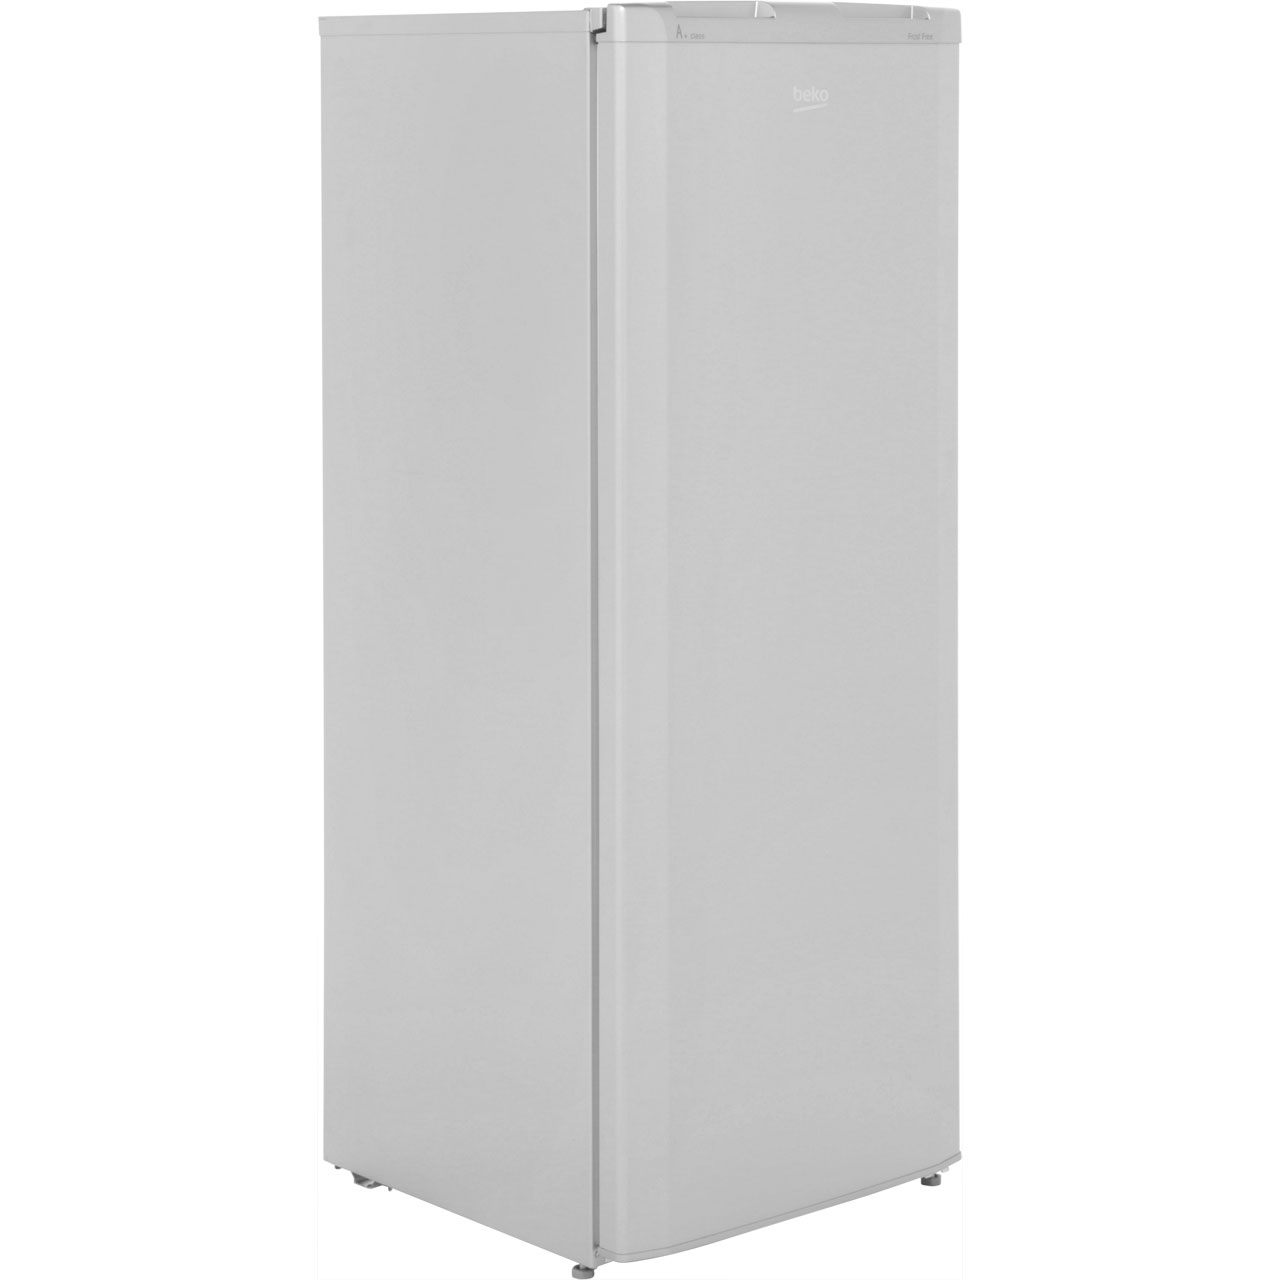 Beko TFF546APS Upright Freezer - Silver